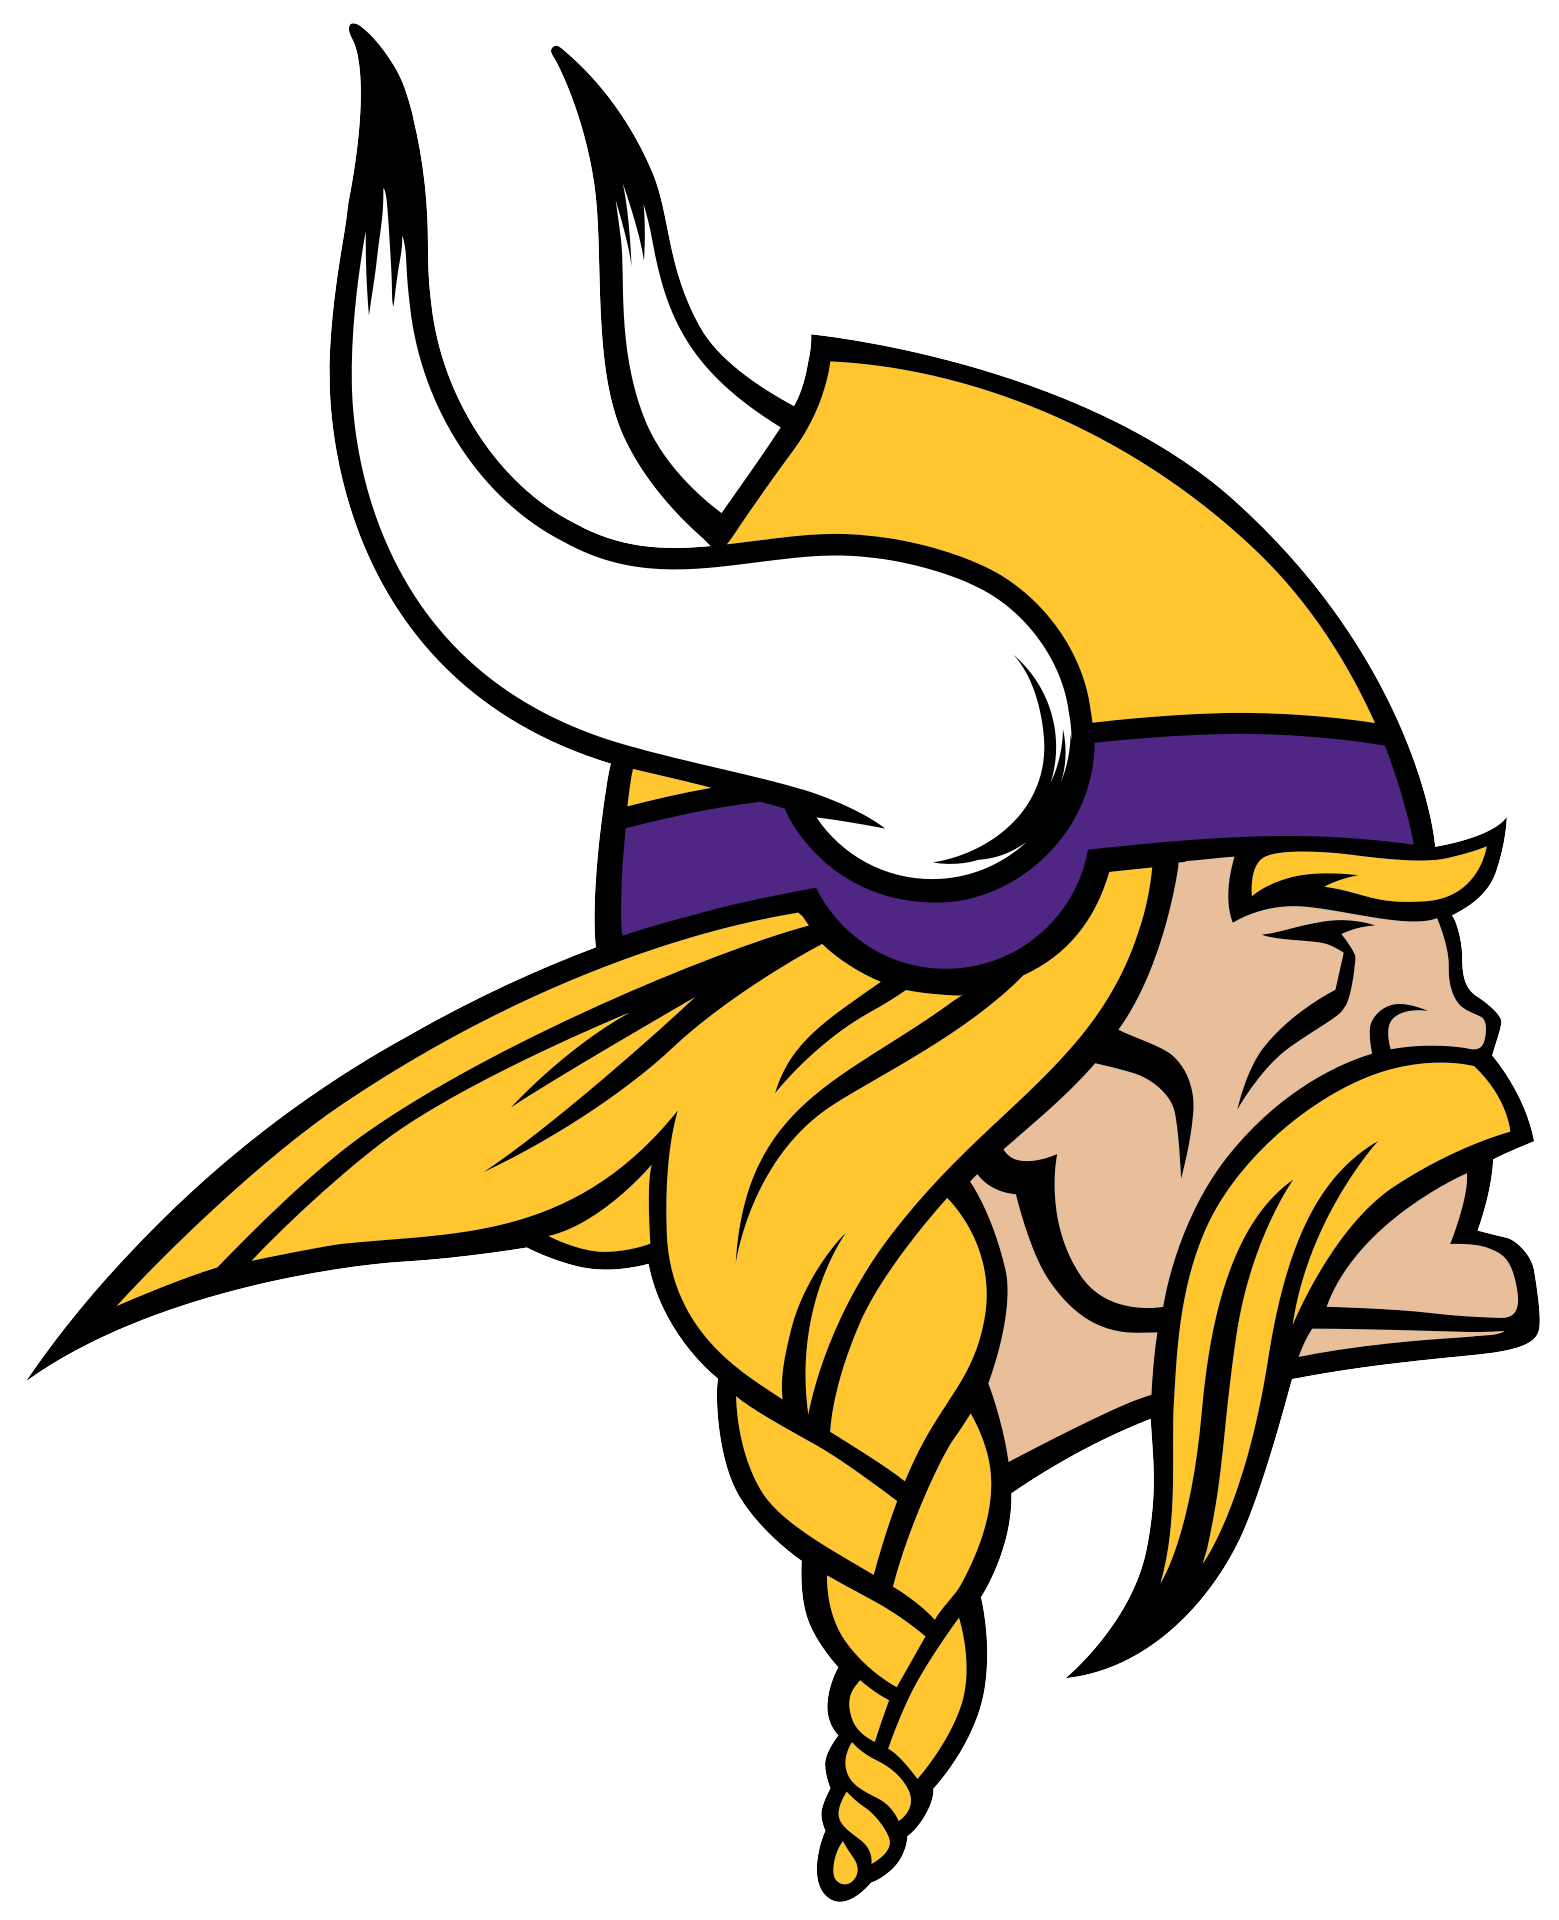 NFL Post Mortem - 2017 Minnesota Vikings